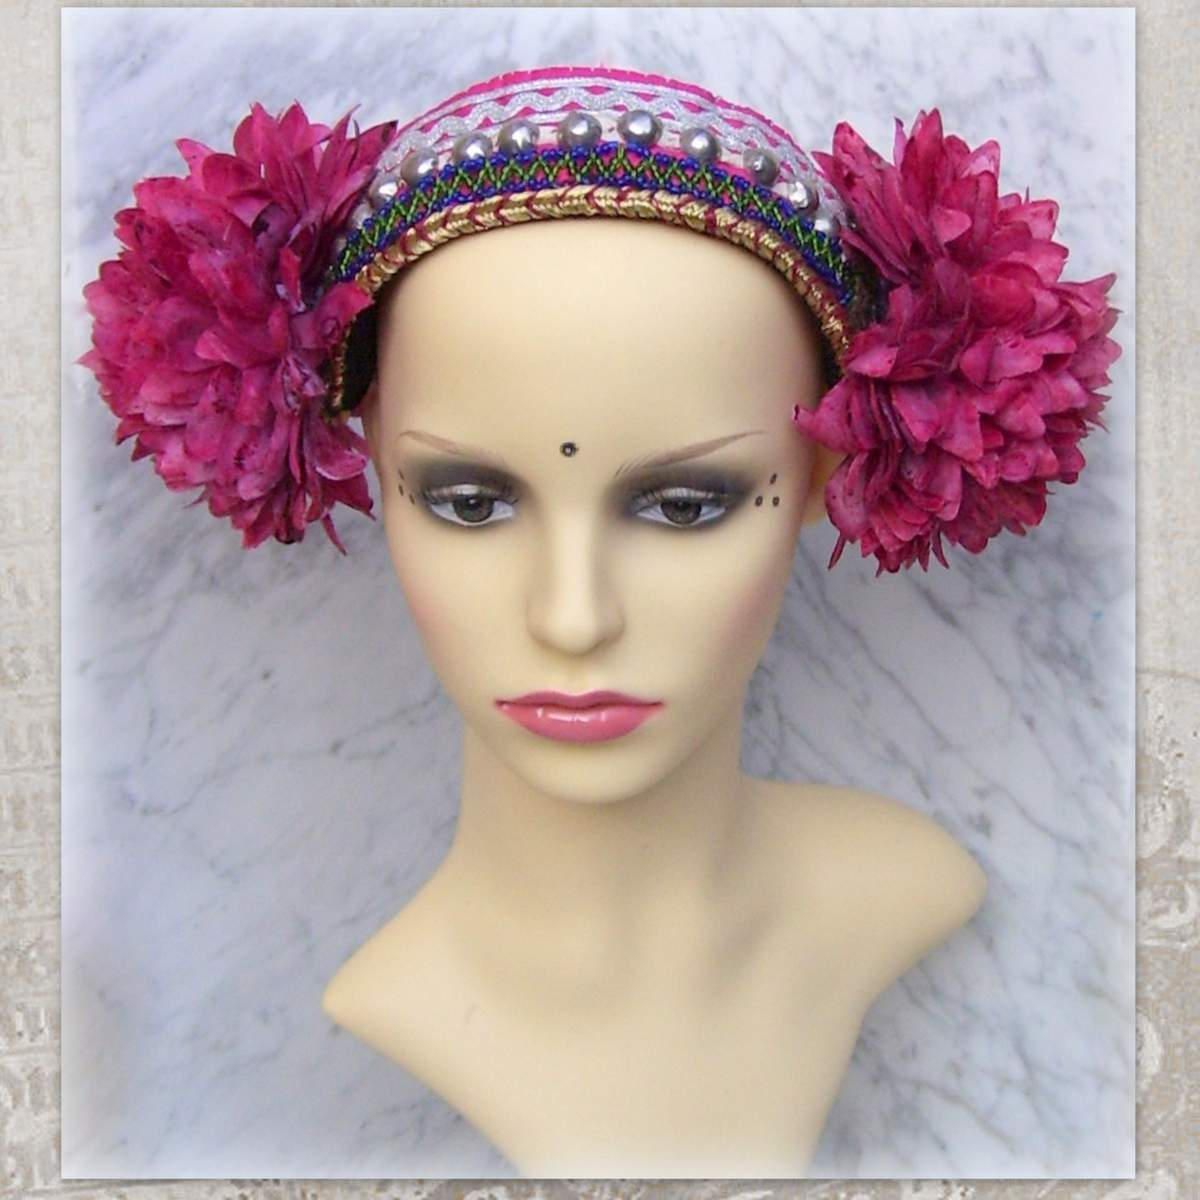 ba6cf97f1 Ethnic Beading Rivets Dance Headwear Accessory Stage Performance ...